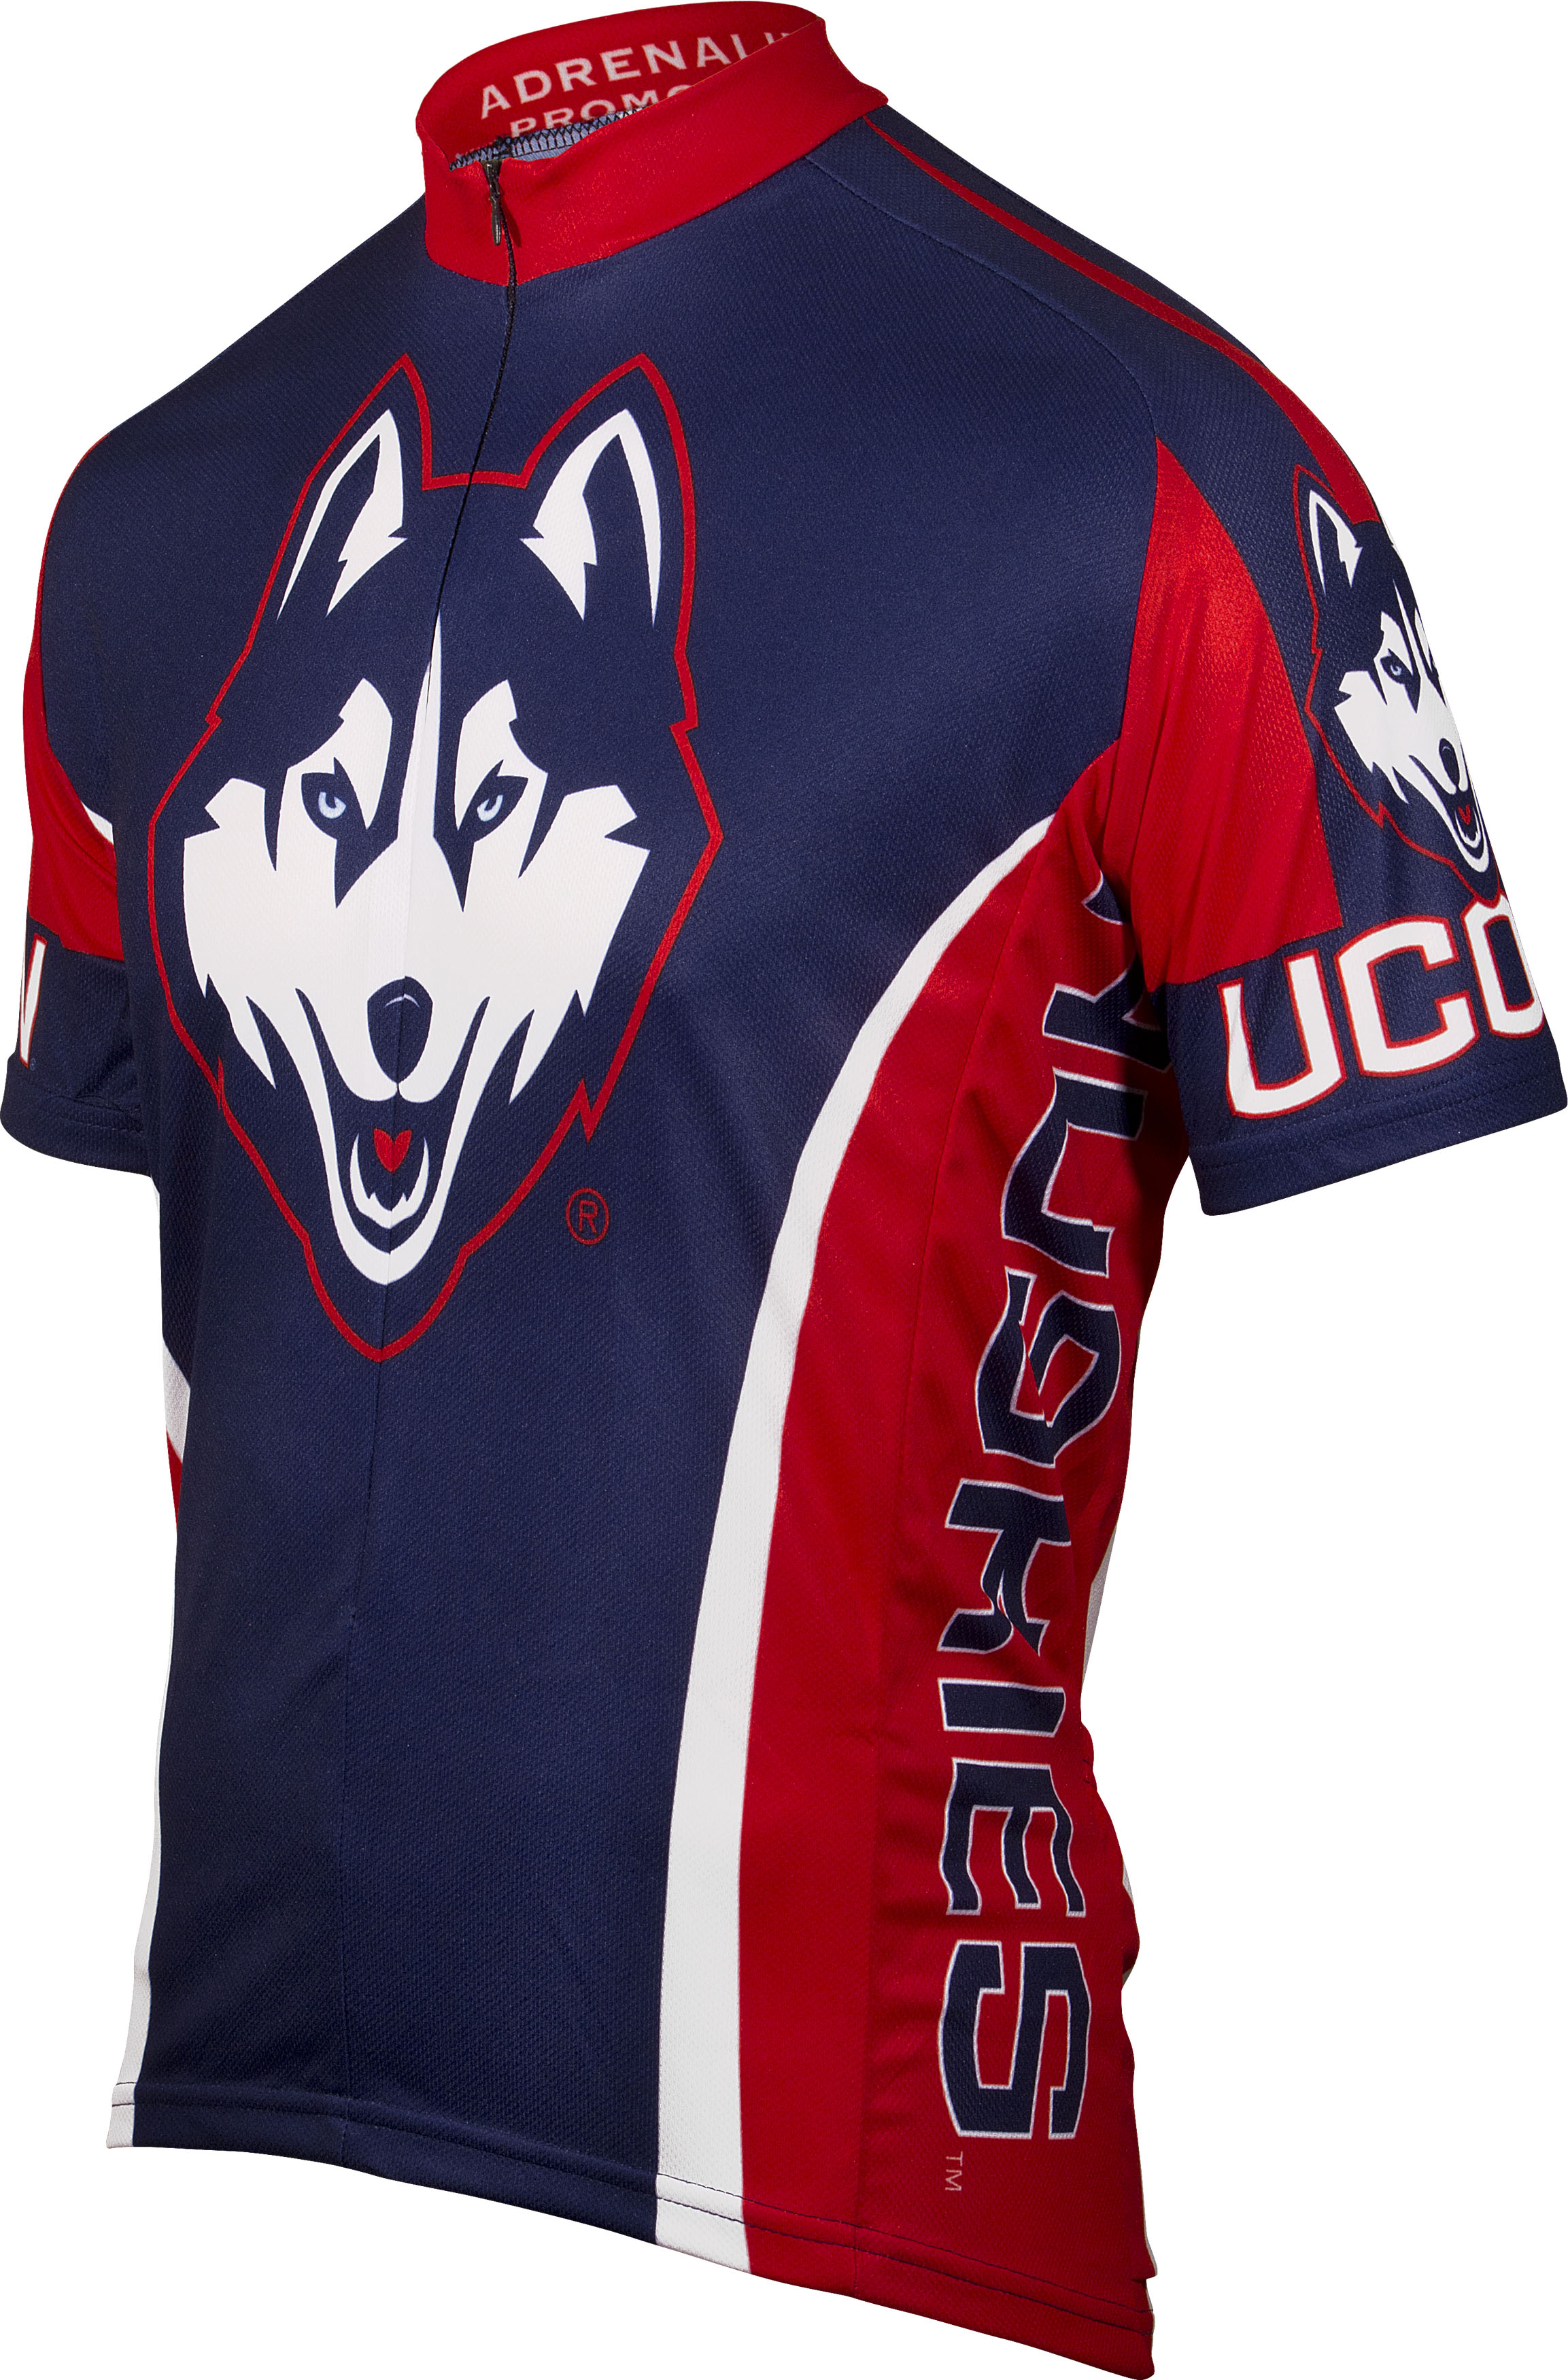 University of Connecticut (UCONN) Cycling Jersey Medium